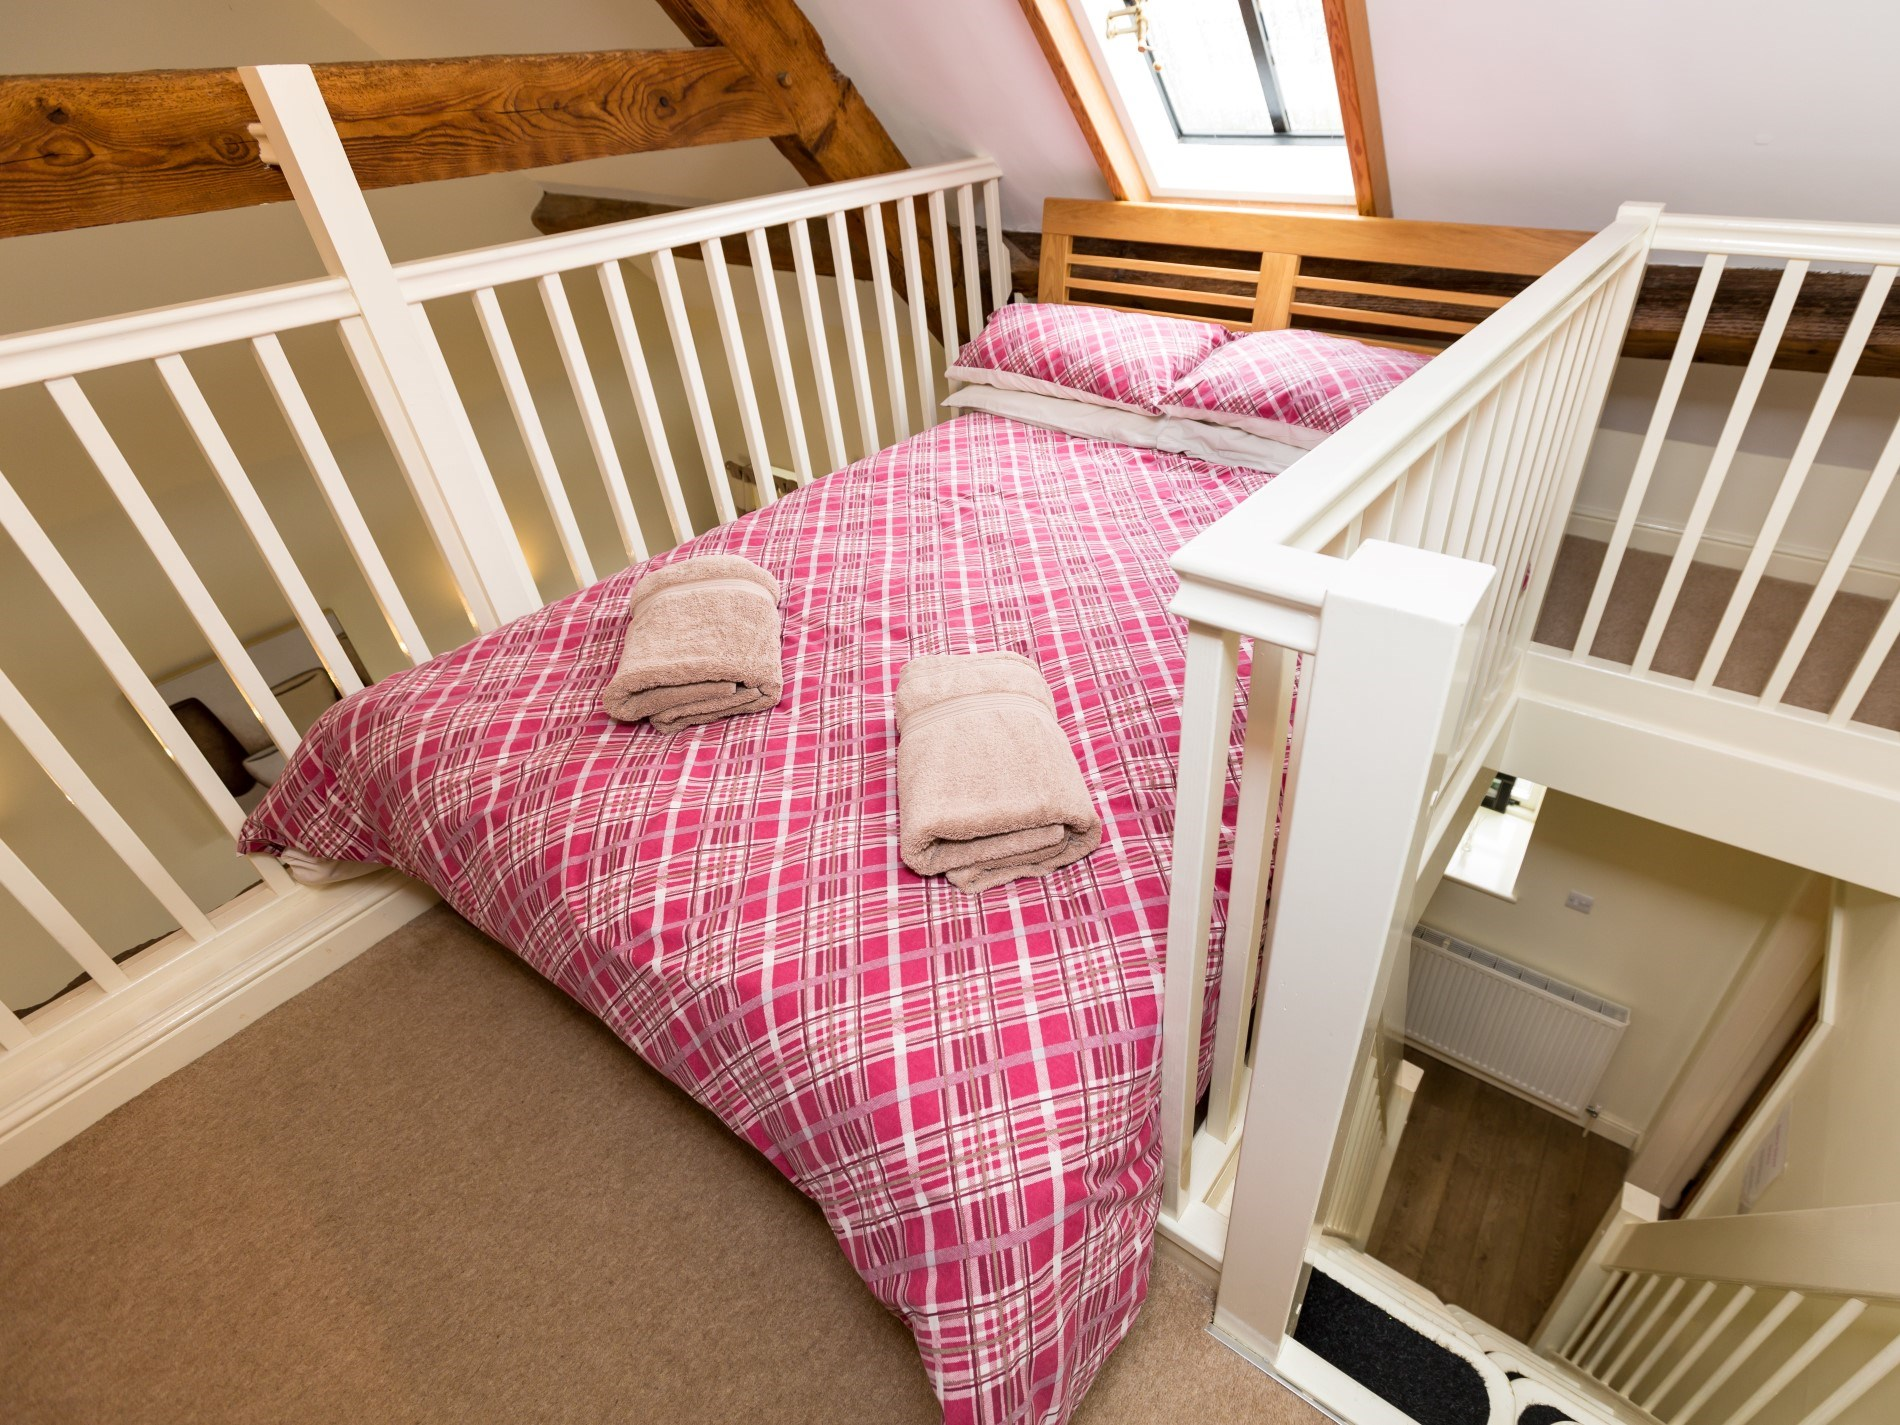 Double bed in mezzanine area